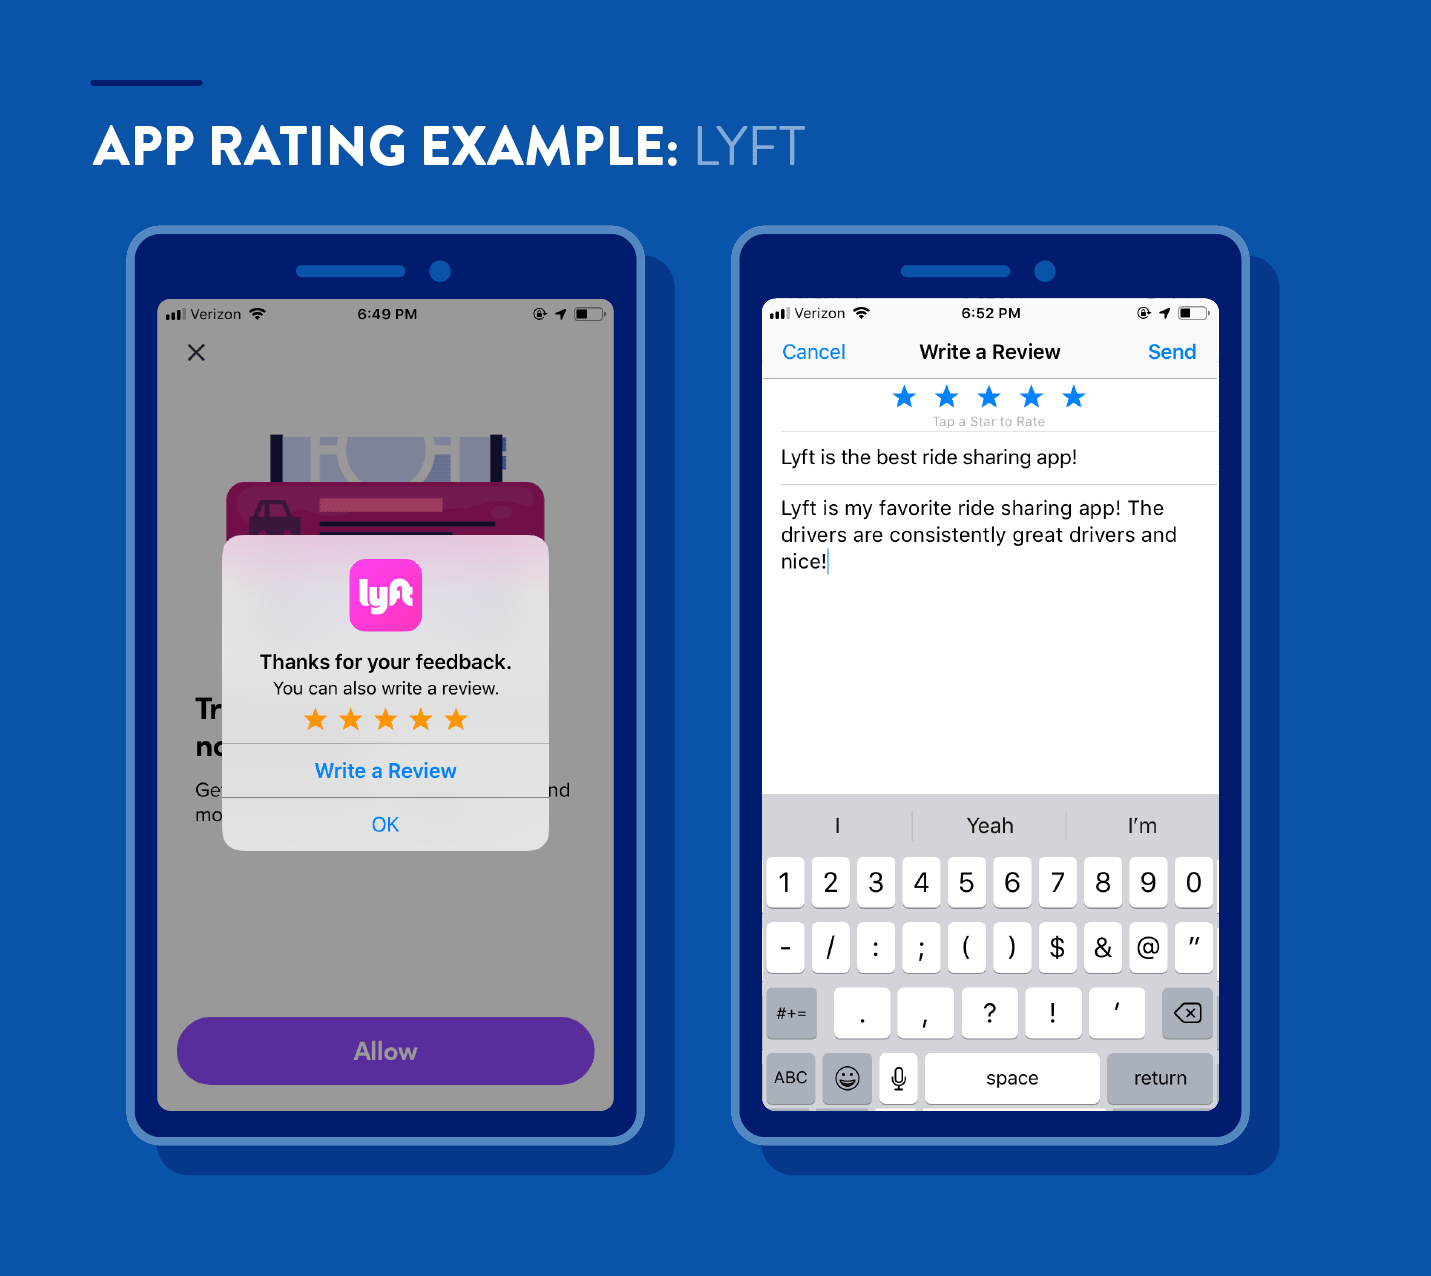 app ratings example from Lyft